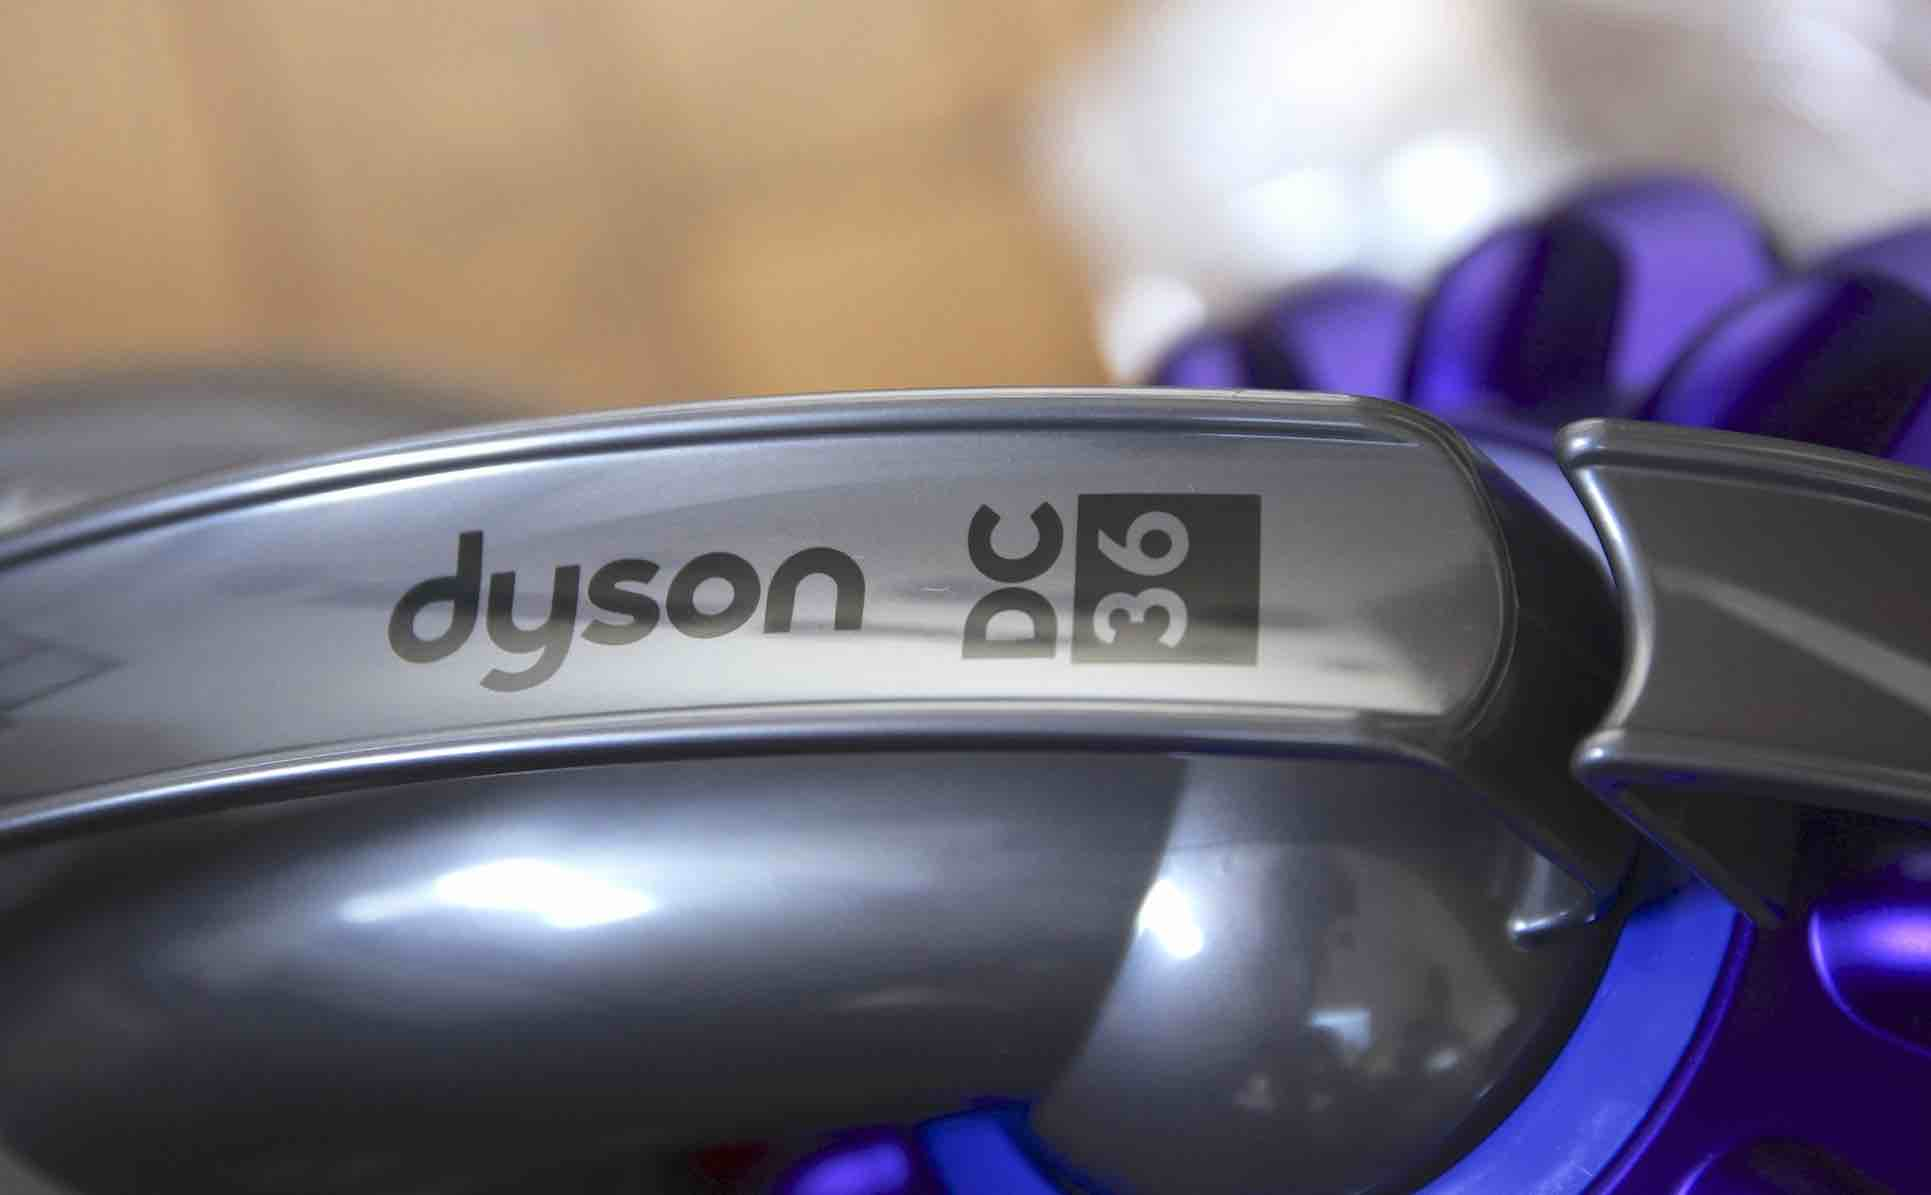 Dyson confirms electric vehicle production in Singapore